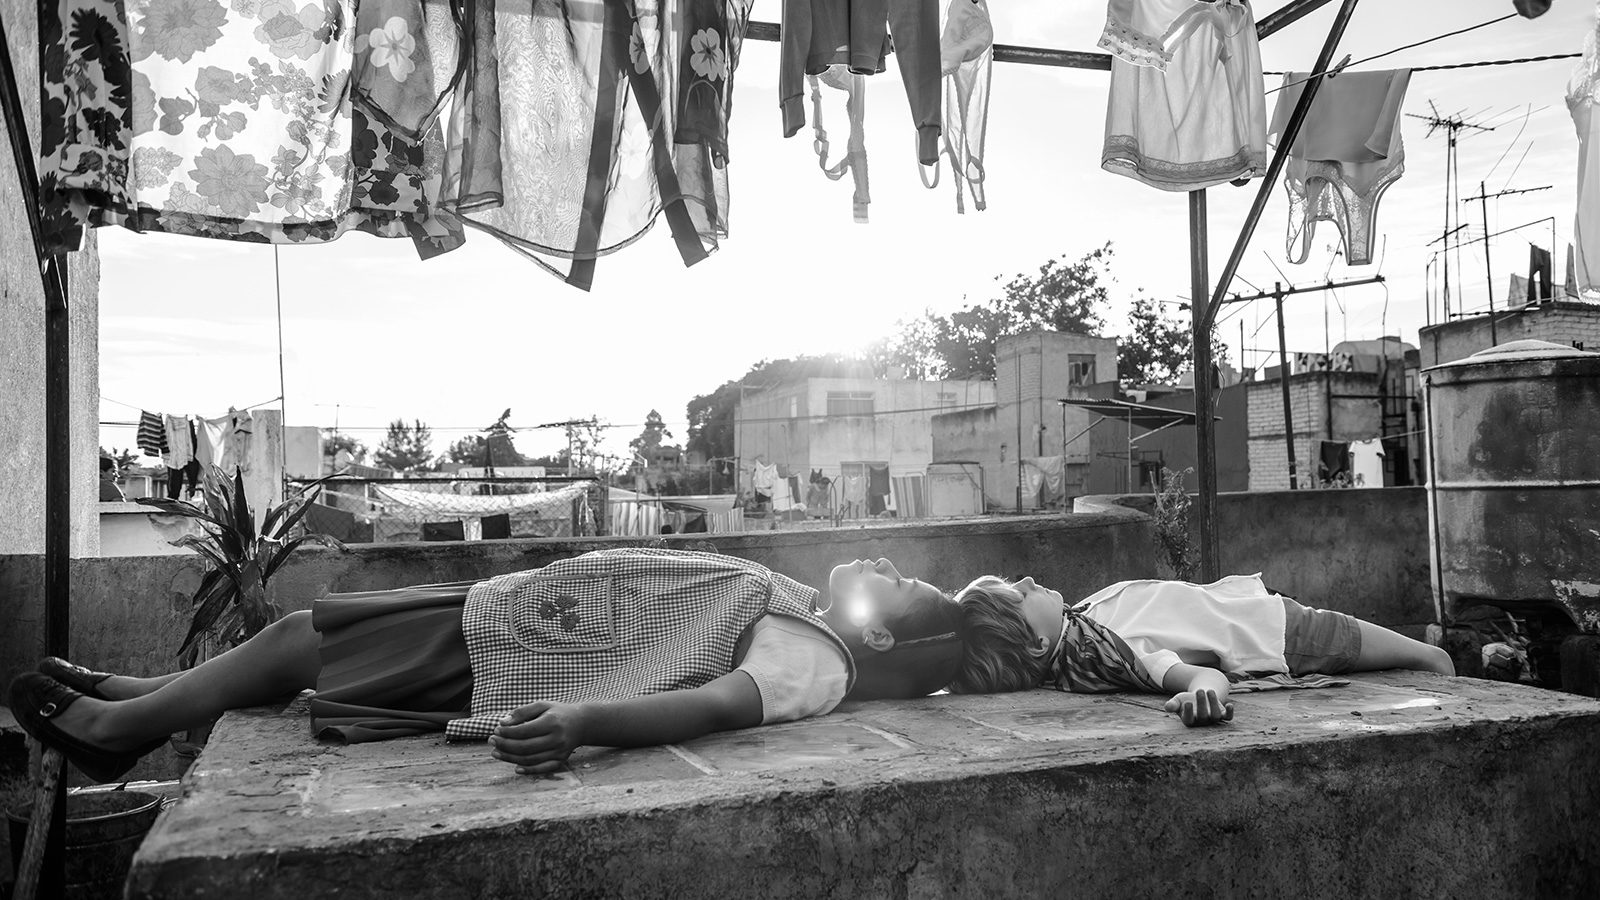 A still from the film Roma. A woman and a boy lie on a roof under a clothesline.